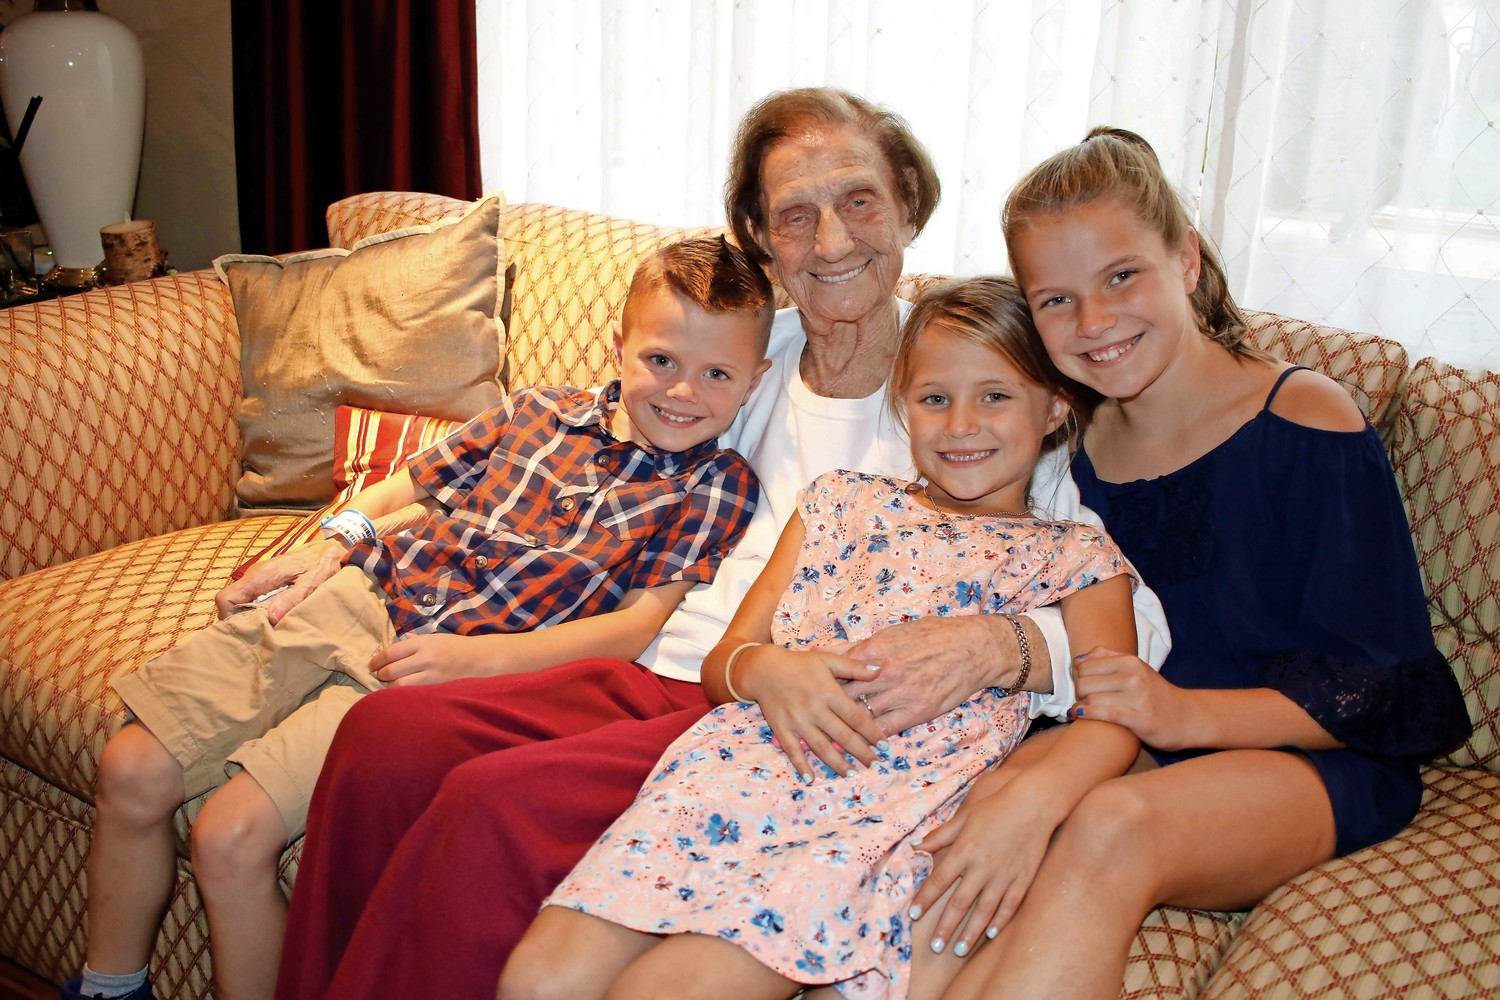 Jack, Allie and Lucy Younghans nestled around their great-grandmother, Mary Fennessy.